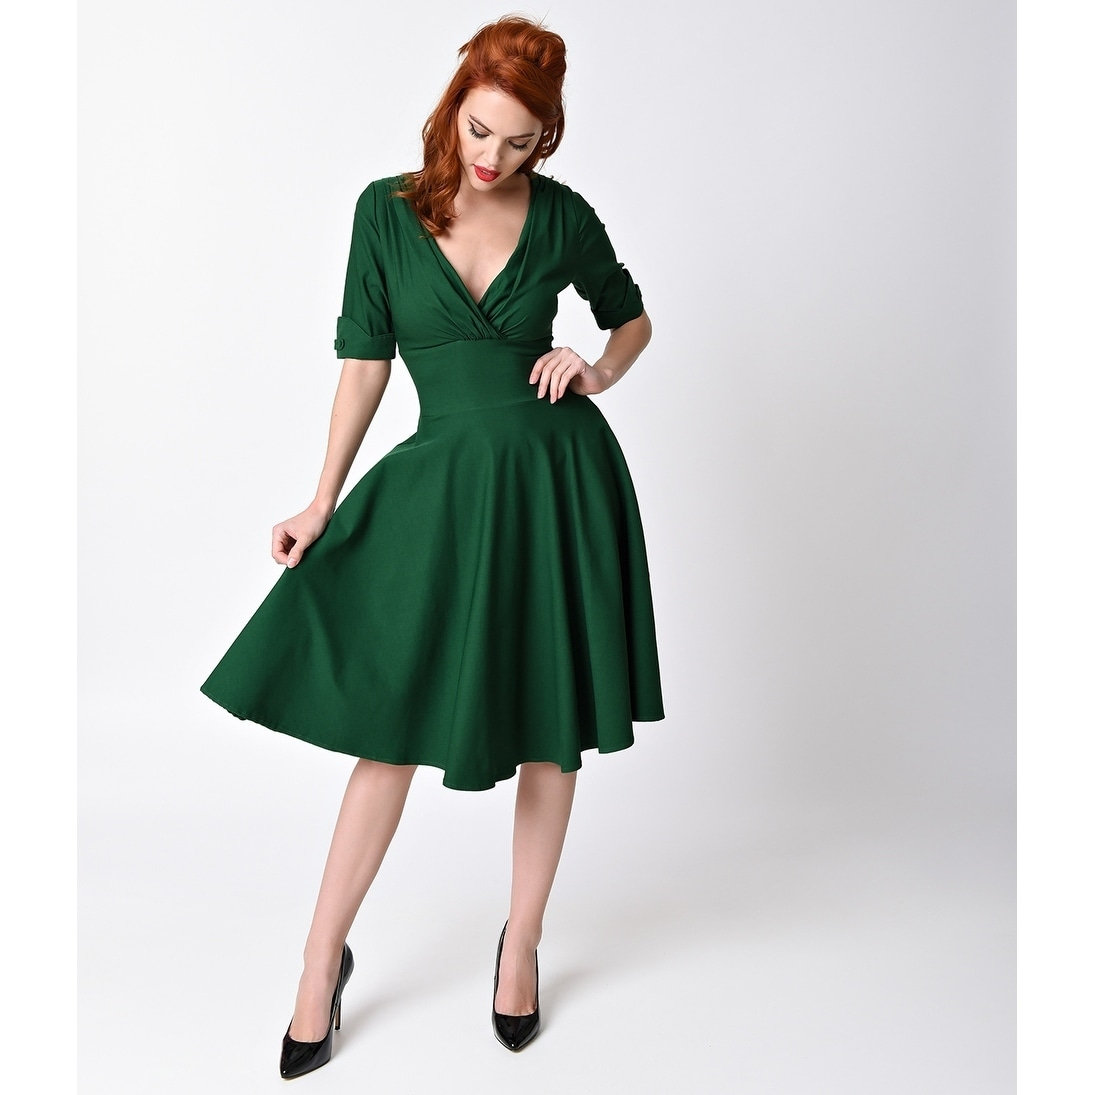 990ae138aa Shop Unique Vintage Emerald Green Delores Swing Dress - Free Shipping Today  - Overstock - 20981092